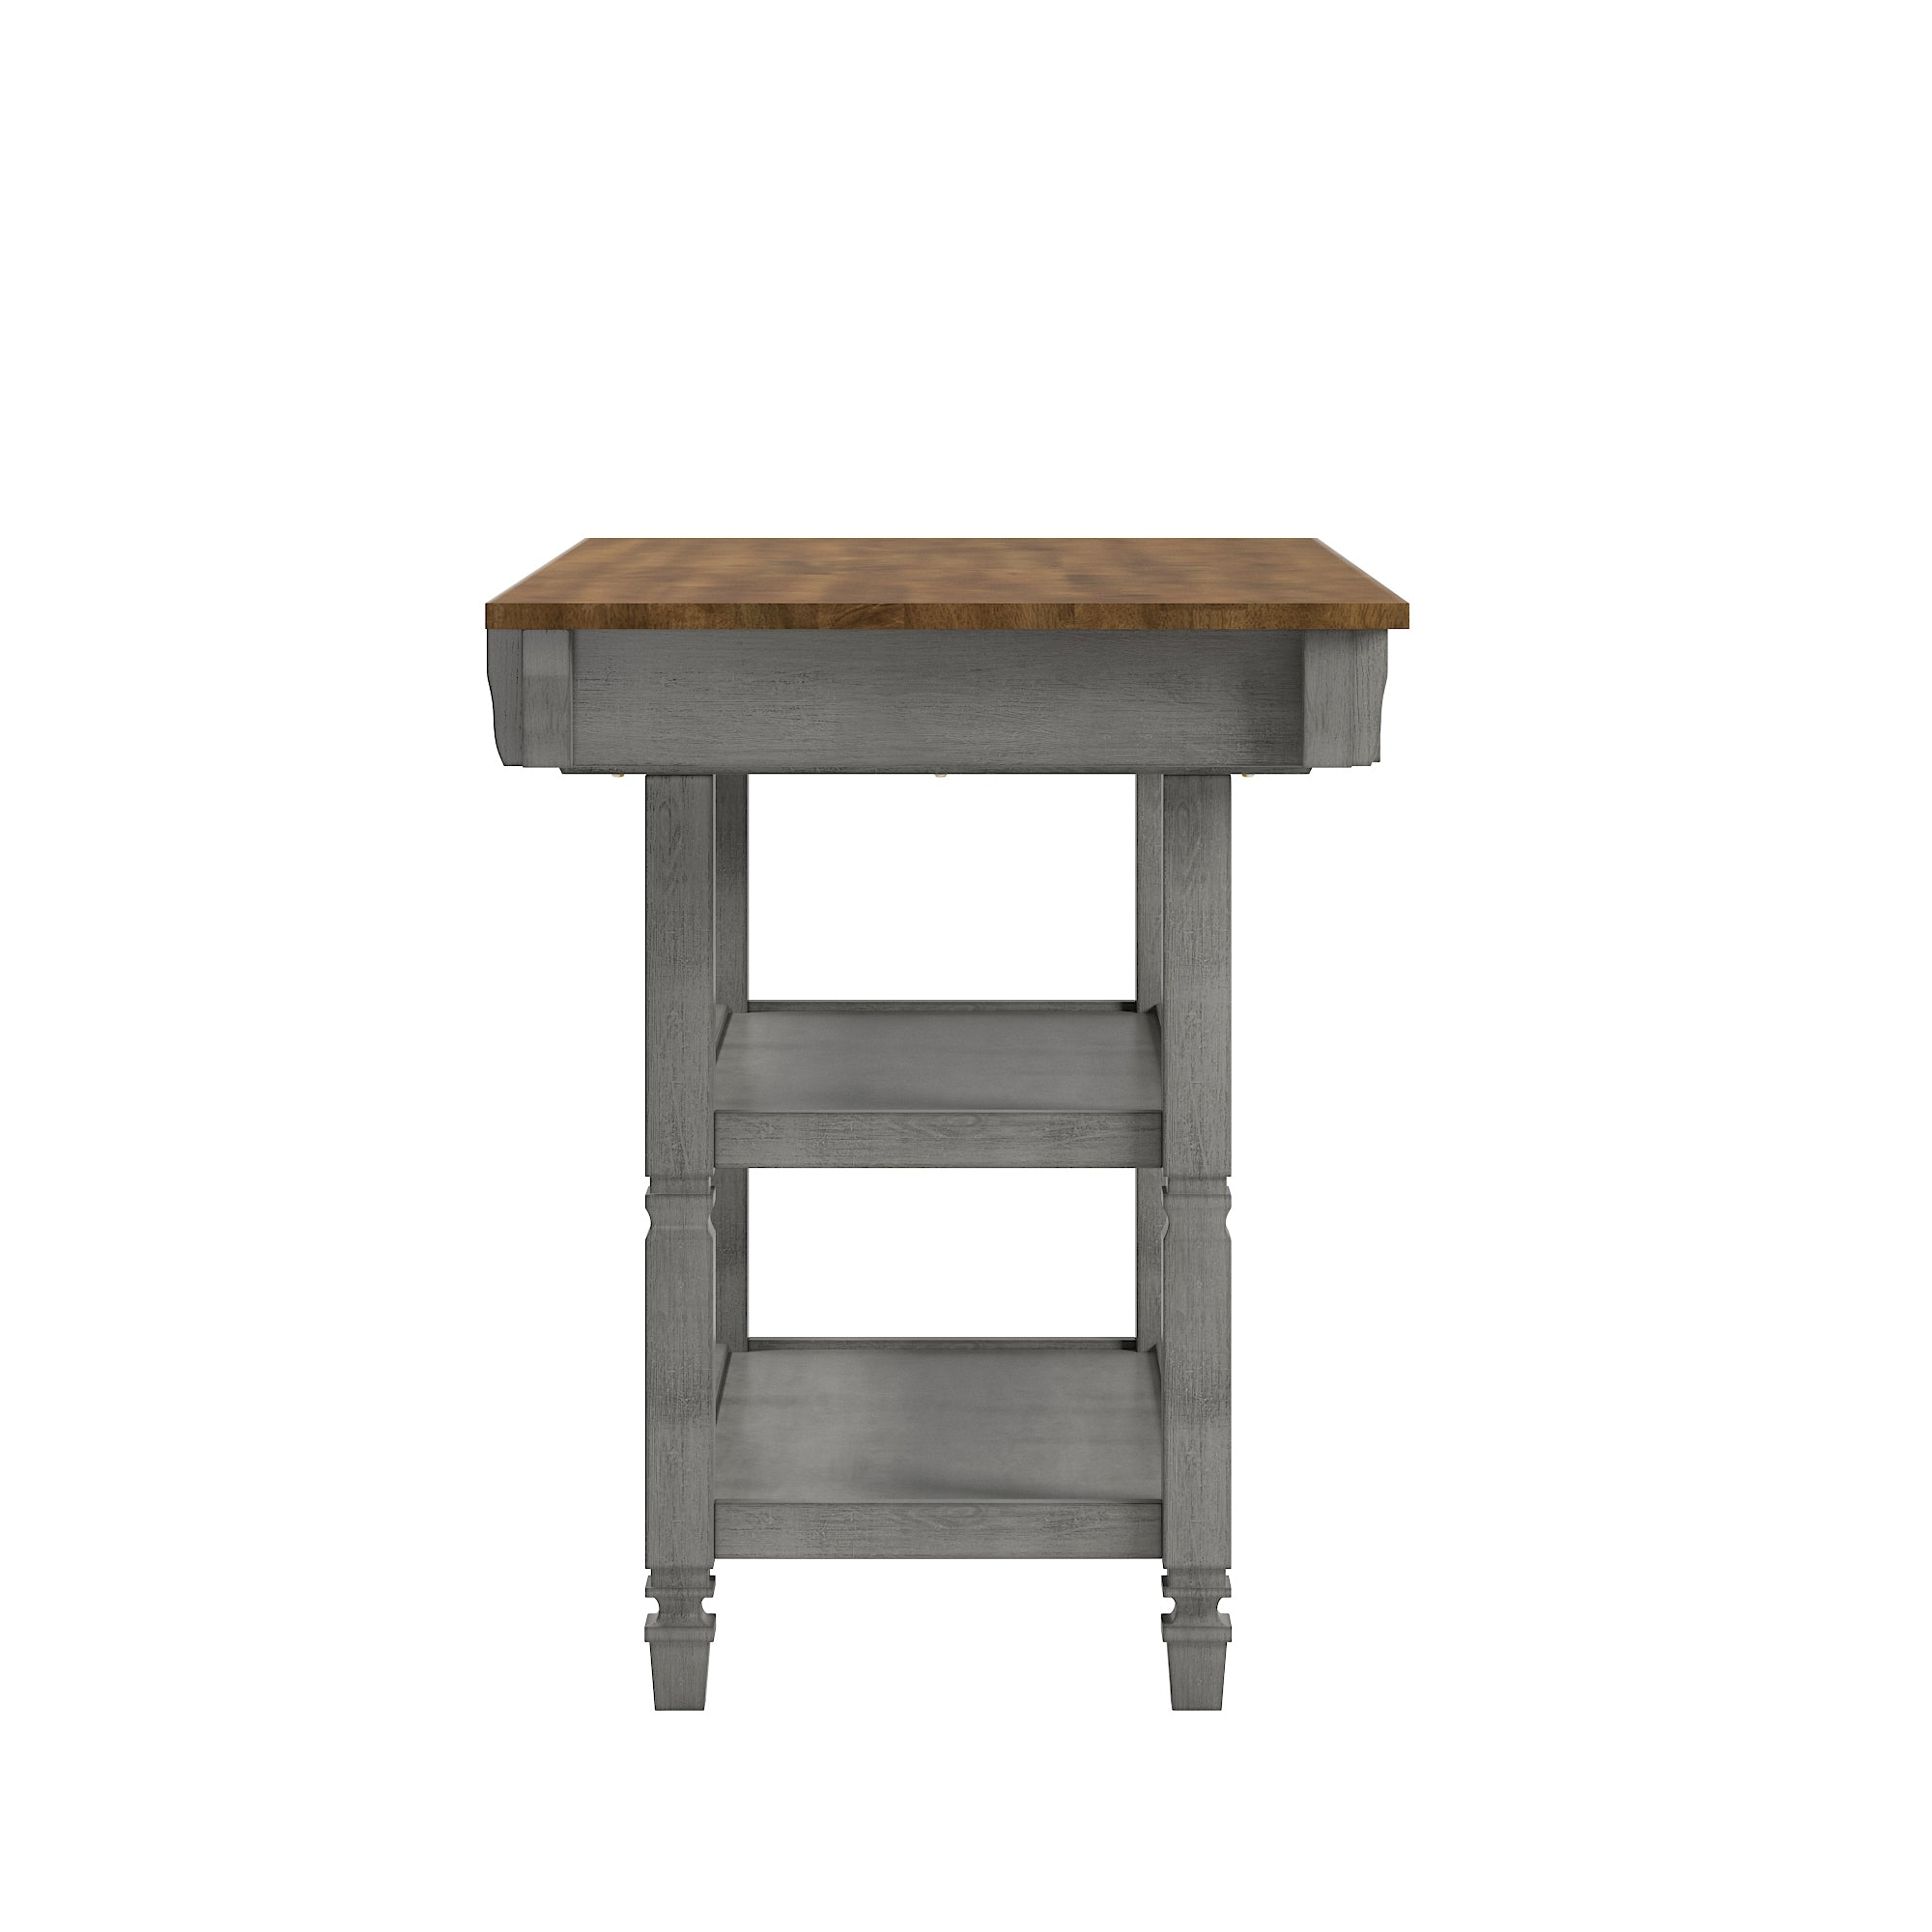 Two-Tone Antique Kitchen Island Buffet - Oak Top with Antique Grey Base